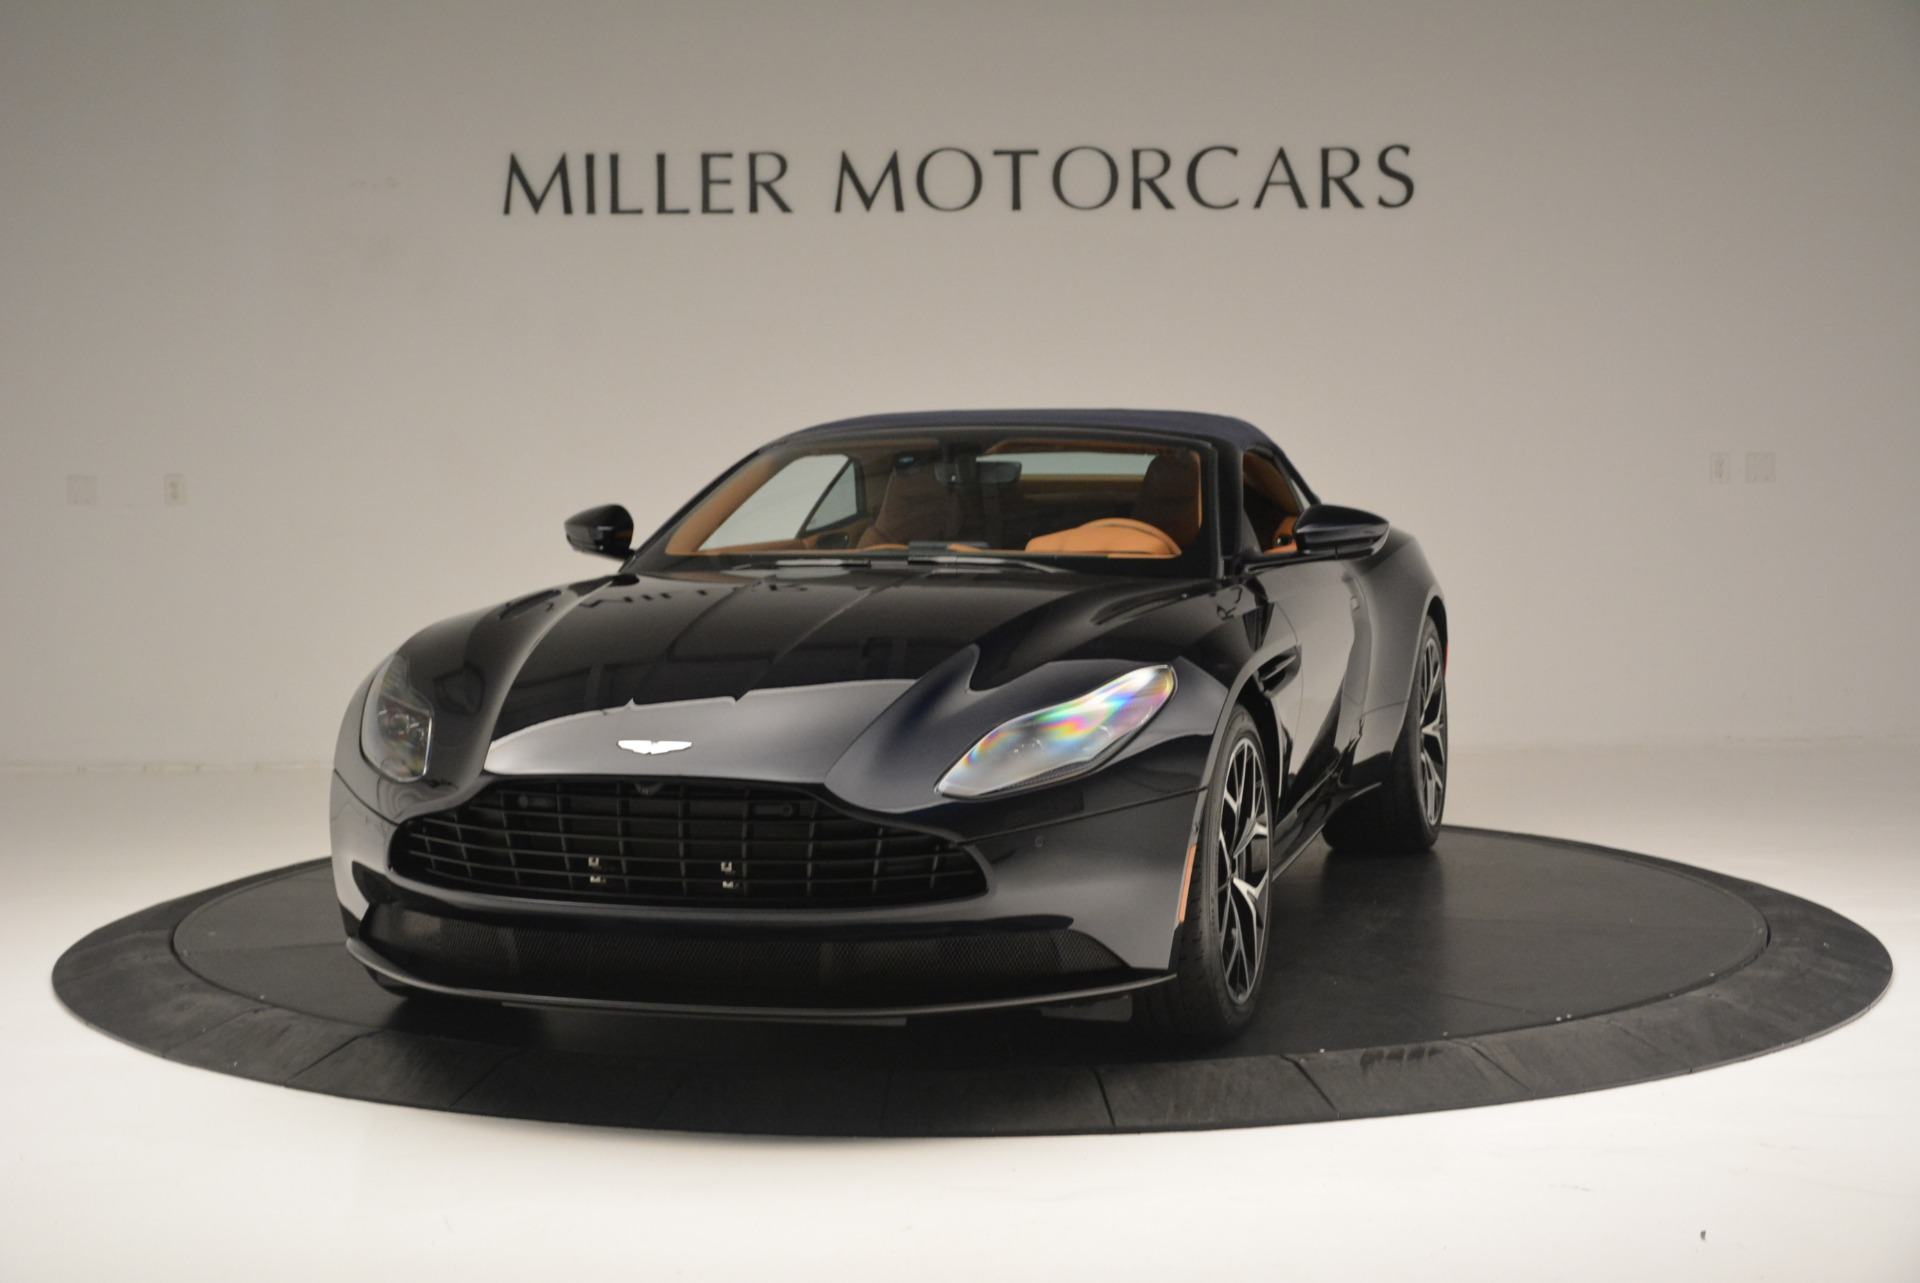 New 2019 Aston Martin DB11 Volante Volante For Sale In Greenwich, CT 2450_p13